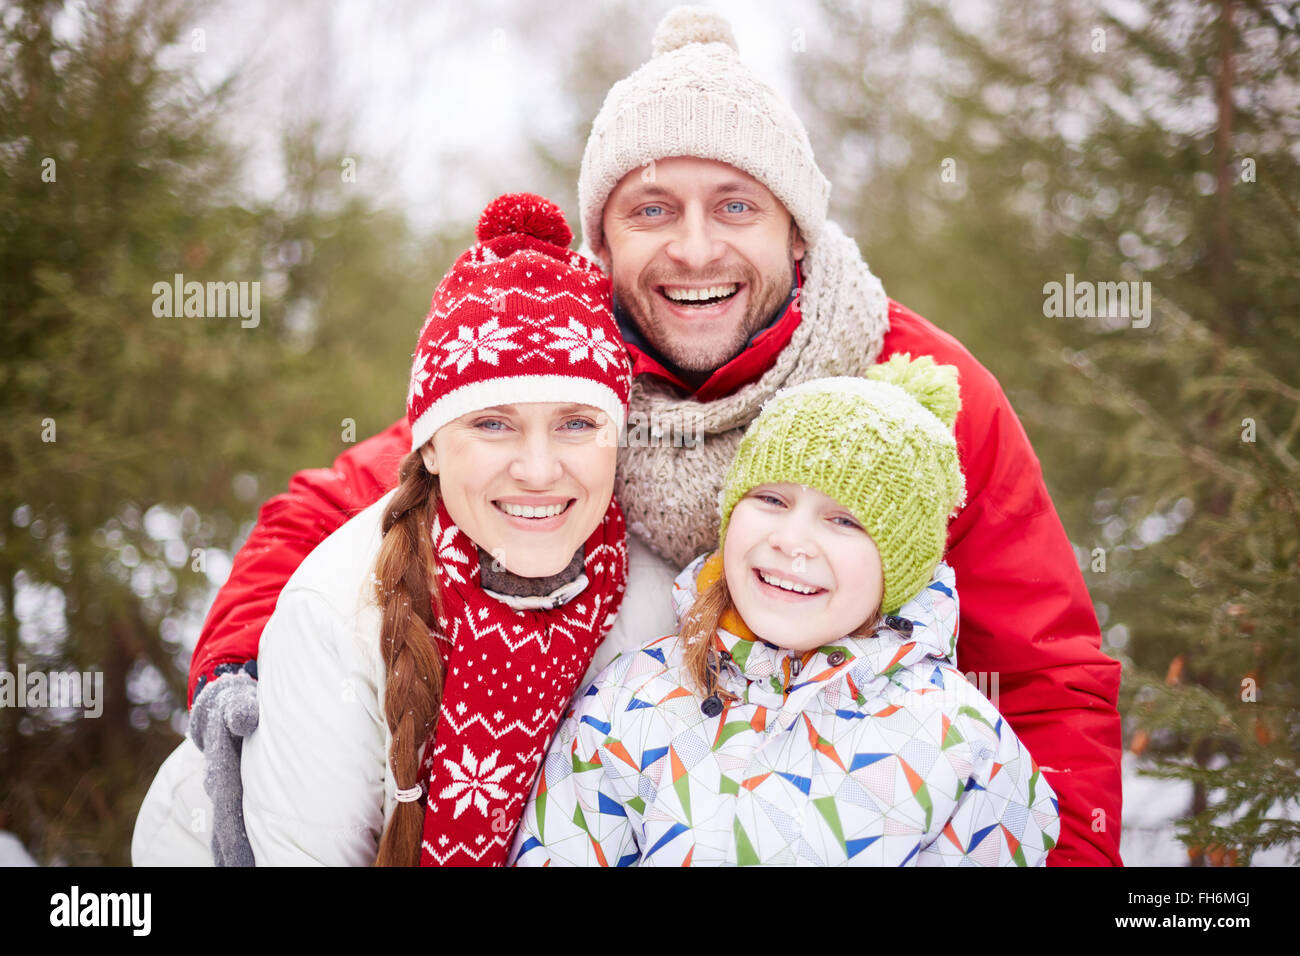 Happy family looking at camera with toothy smiles outdoors - Stock Image